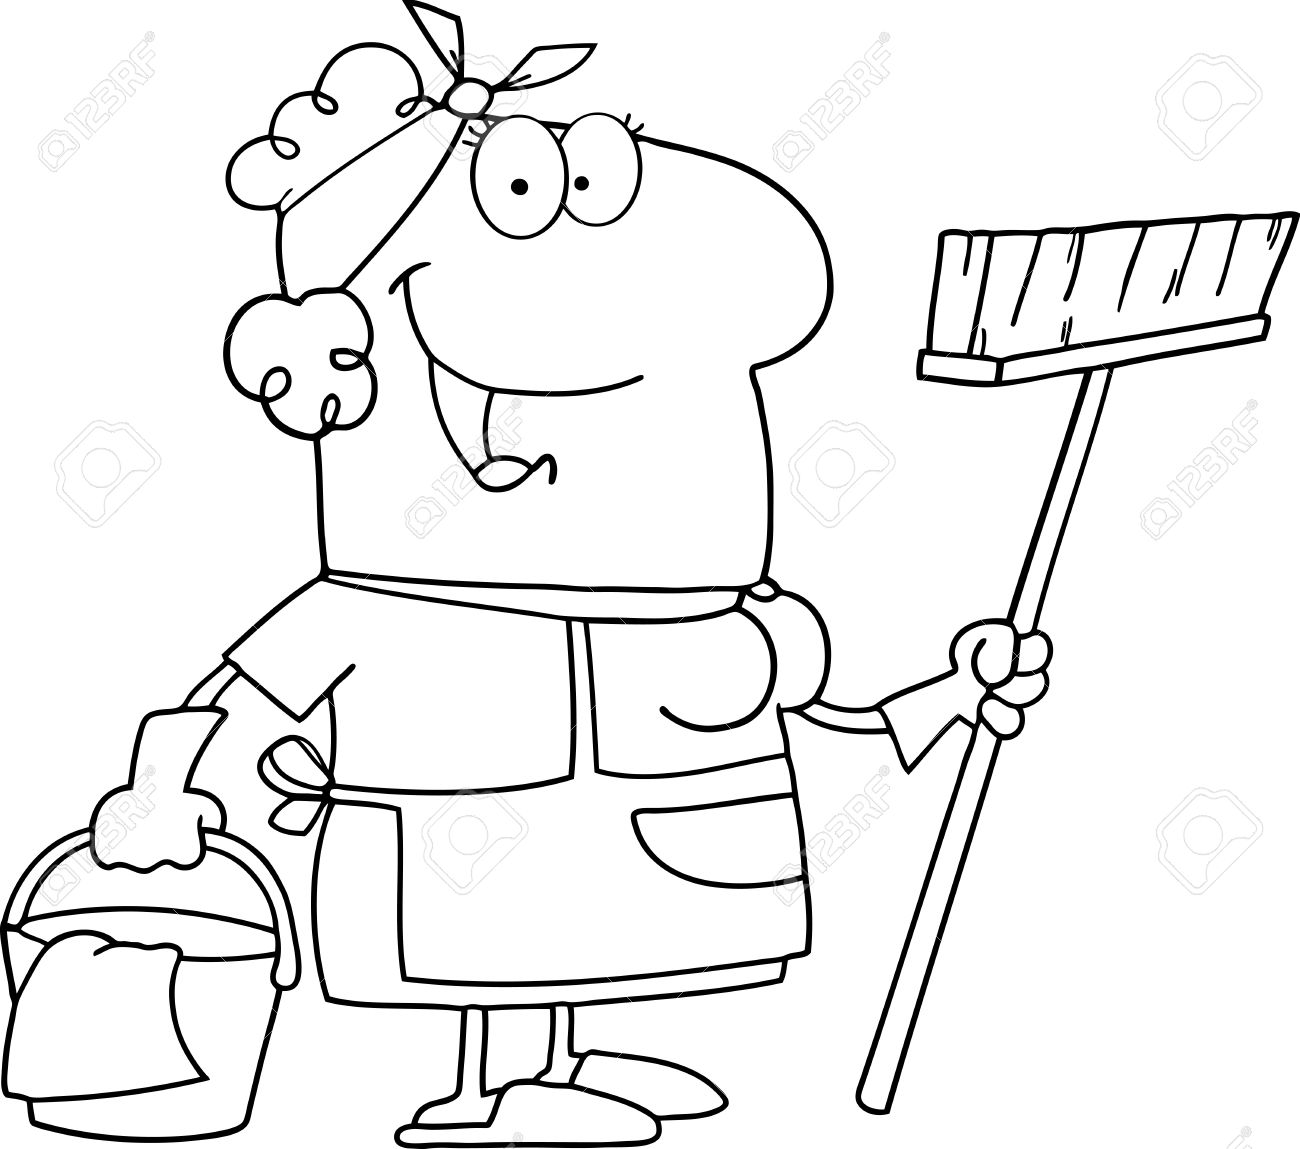 1300x1149 Outlined Cleaning Lady Cartoon Character Royalty Free Cliparts